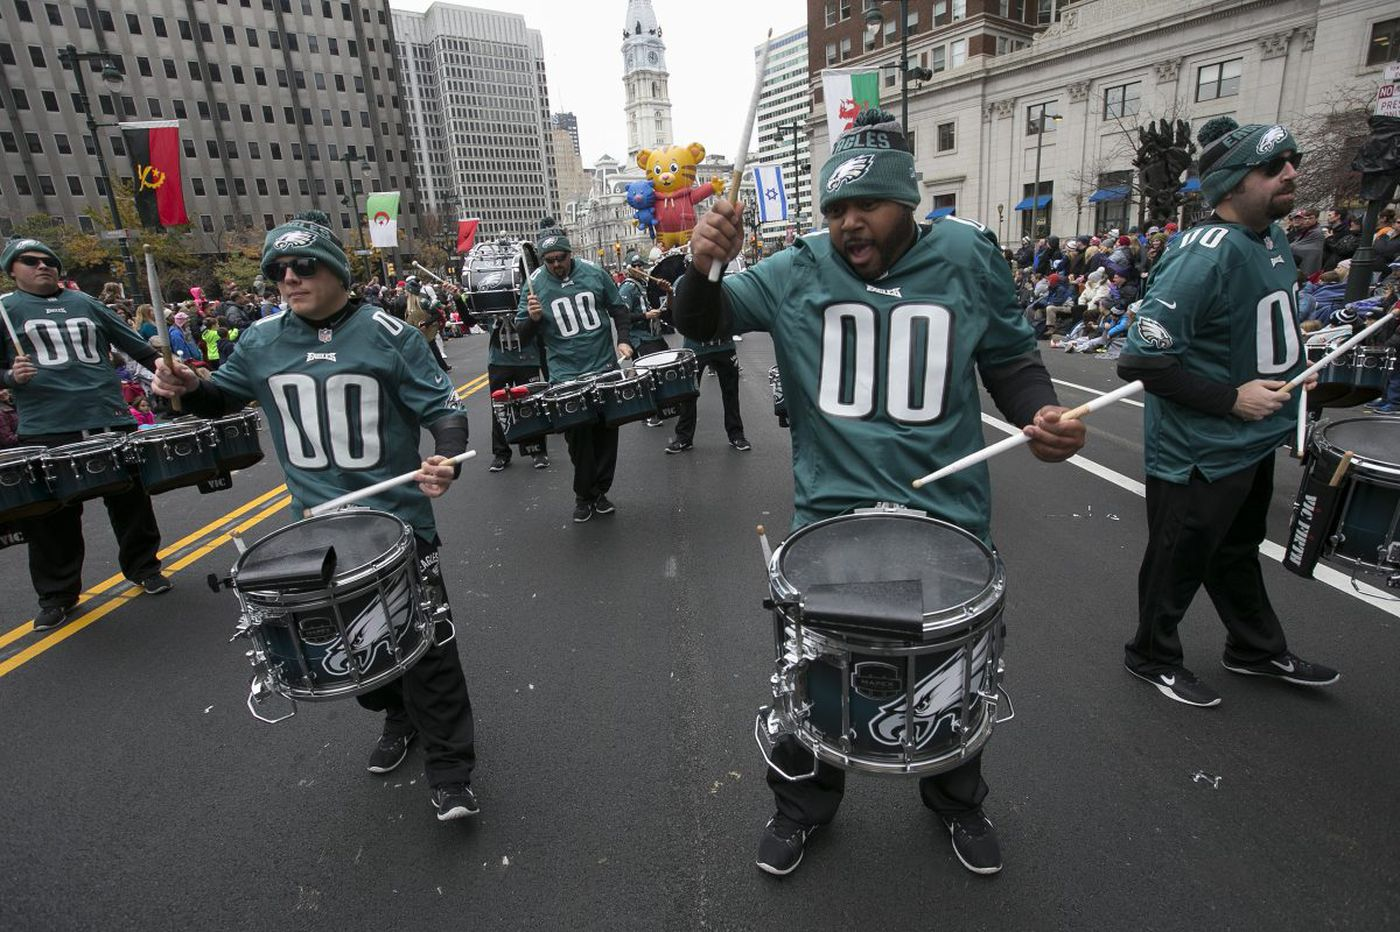 Fly, Eagles Fly lyrics: A short history of the Eagles fight song